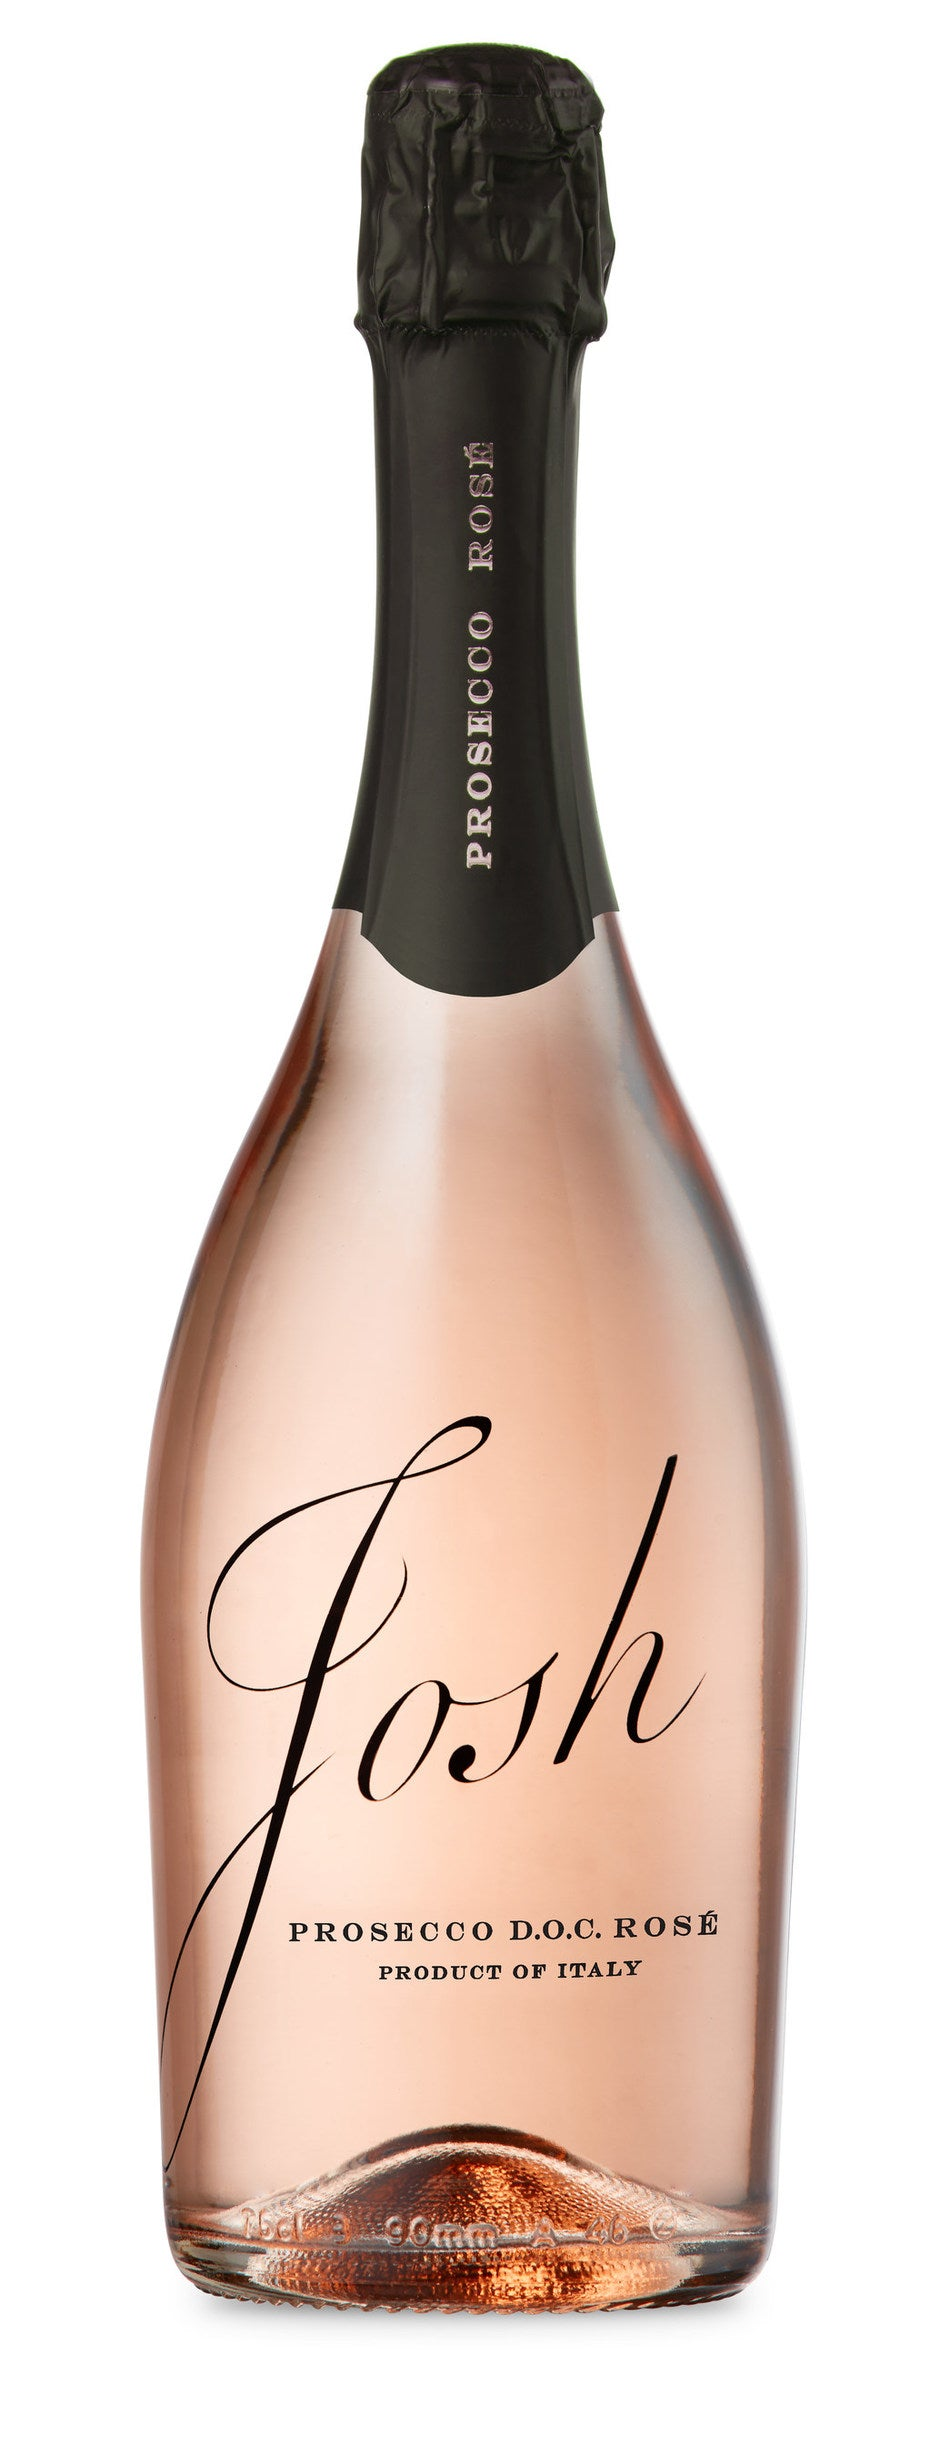 JOSH PROSECCO ROSE 750ML